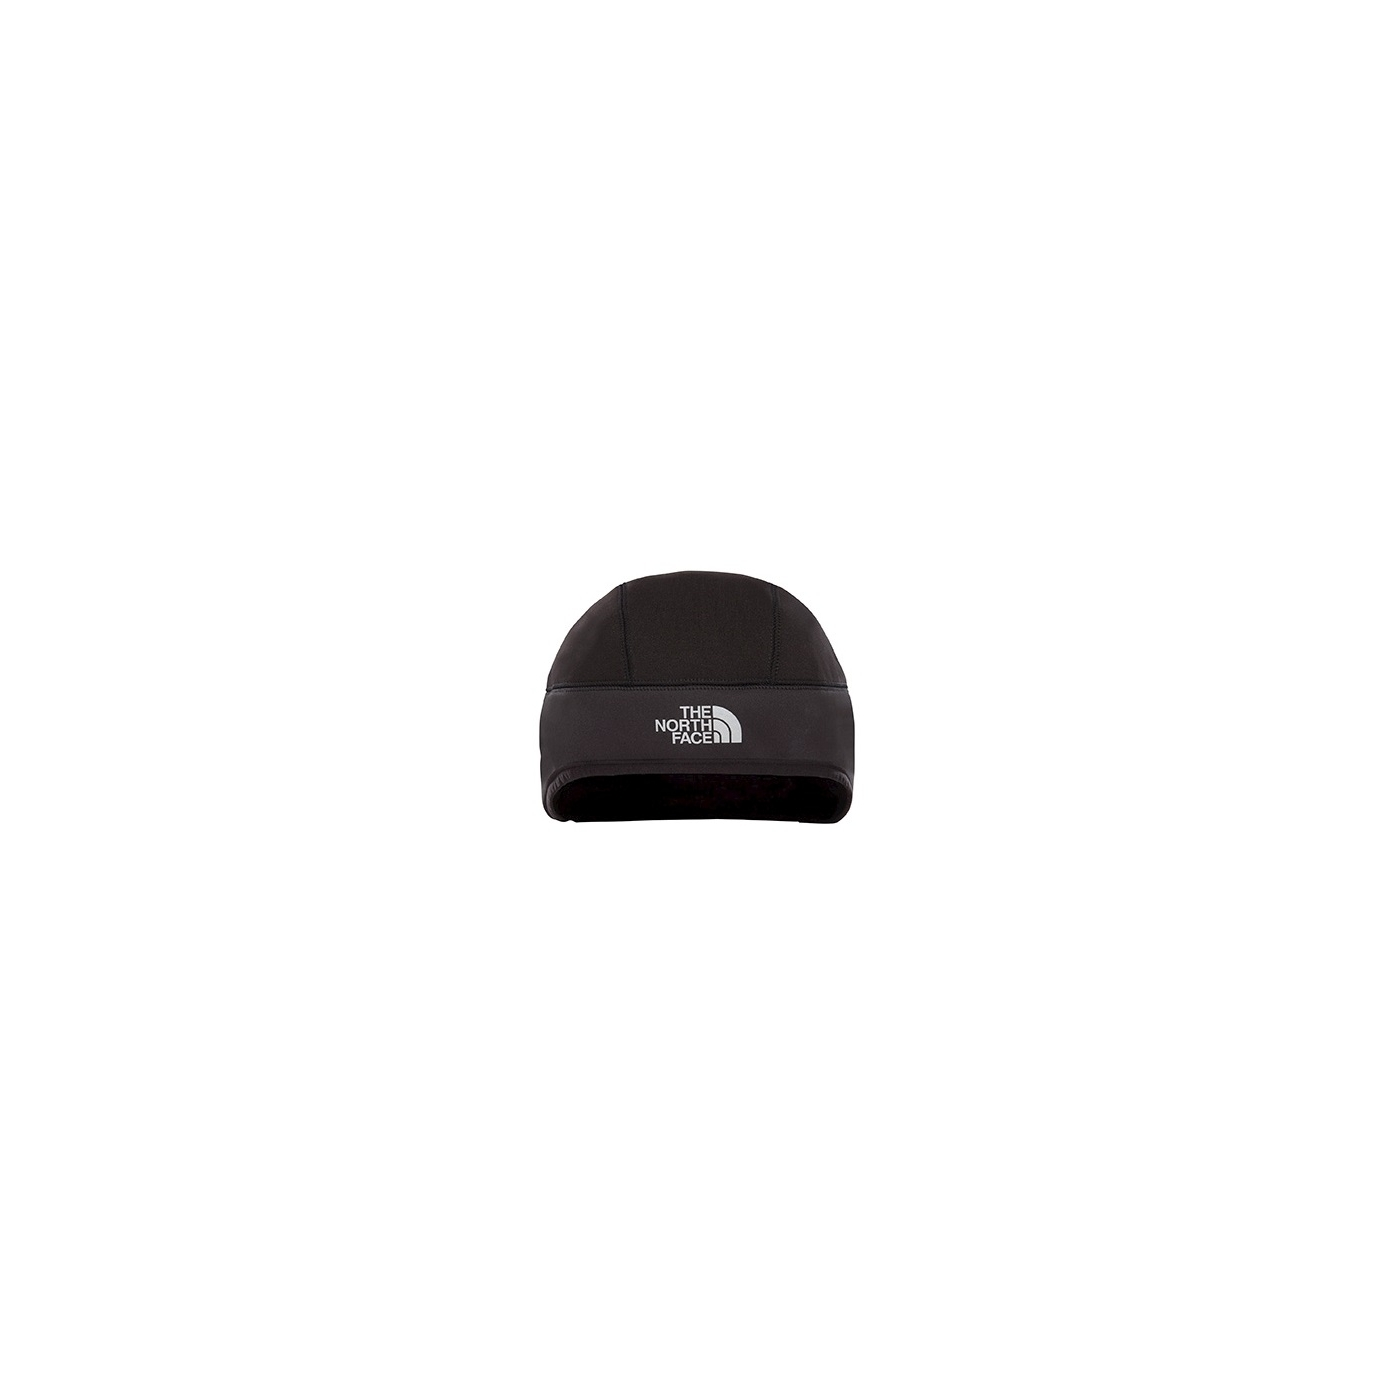 057071259 Bonnet The North Face Windwall Black Silver Reflective